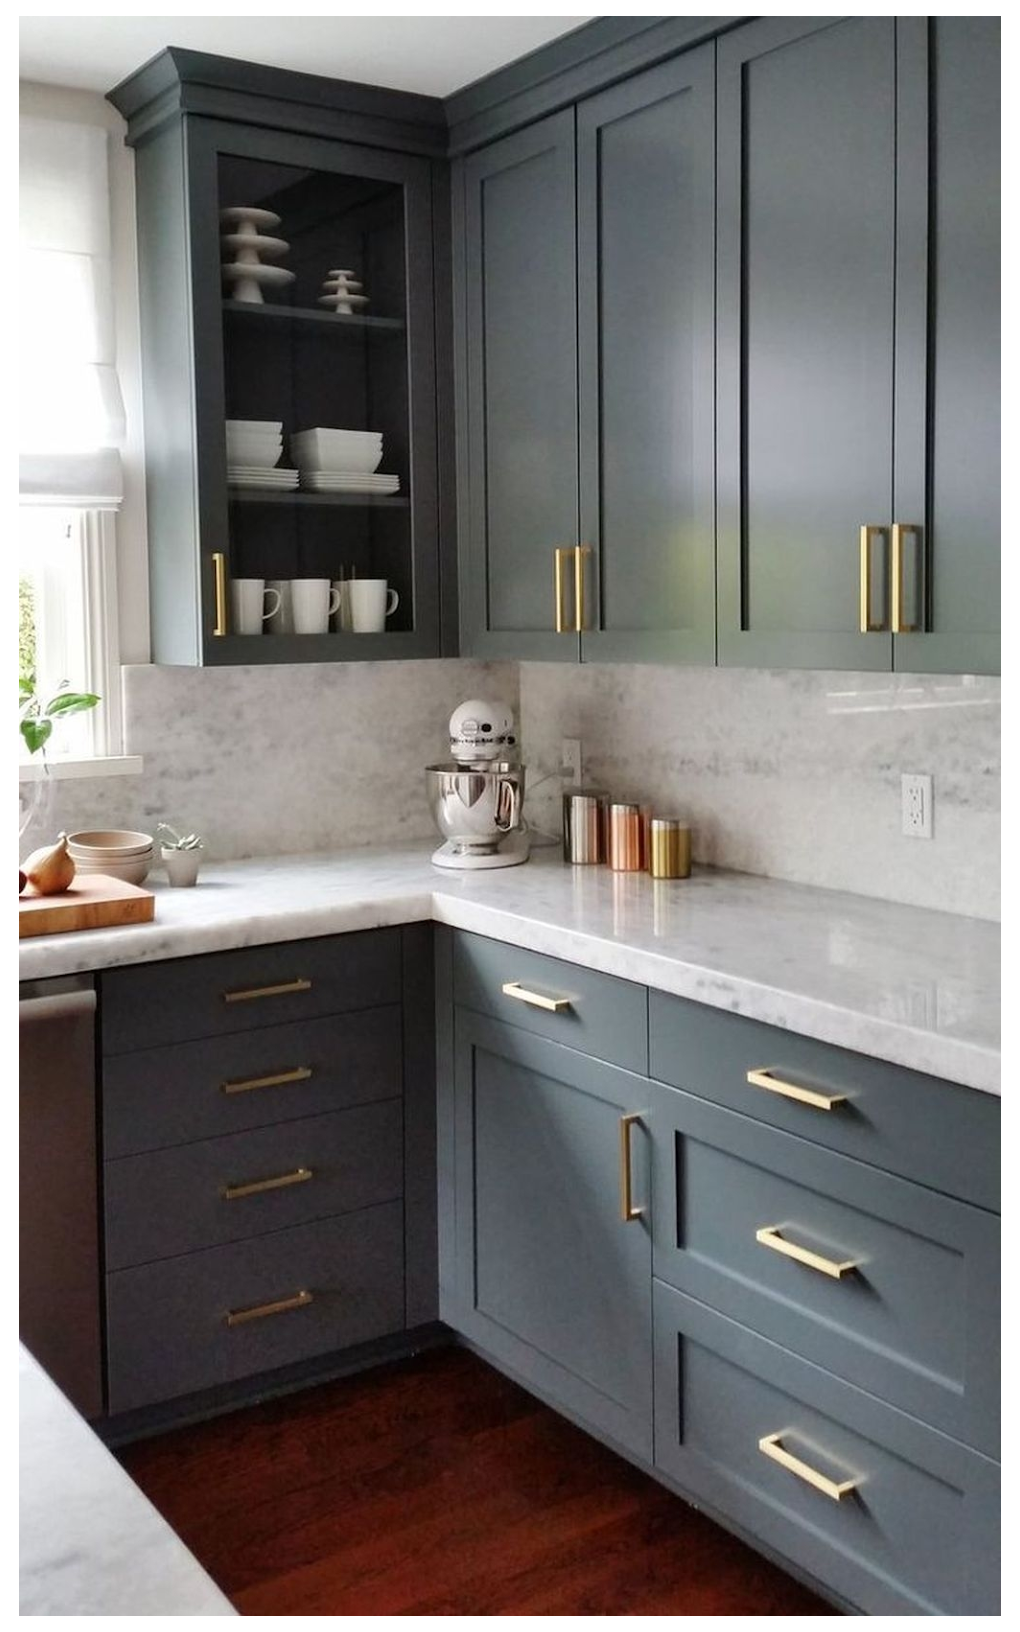 Open Shelving Better Than Upper Cabinets Pros Vs Cons Modern Kitchen Cabinets In 2020 Kitchen Inspiration Design Blue Gray Kitchen Cabinets Grey Kitchen Cabinets